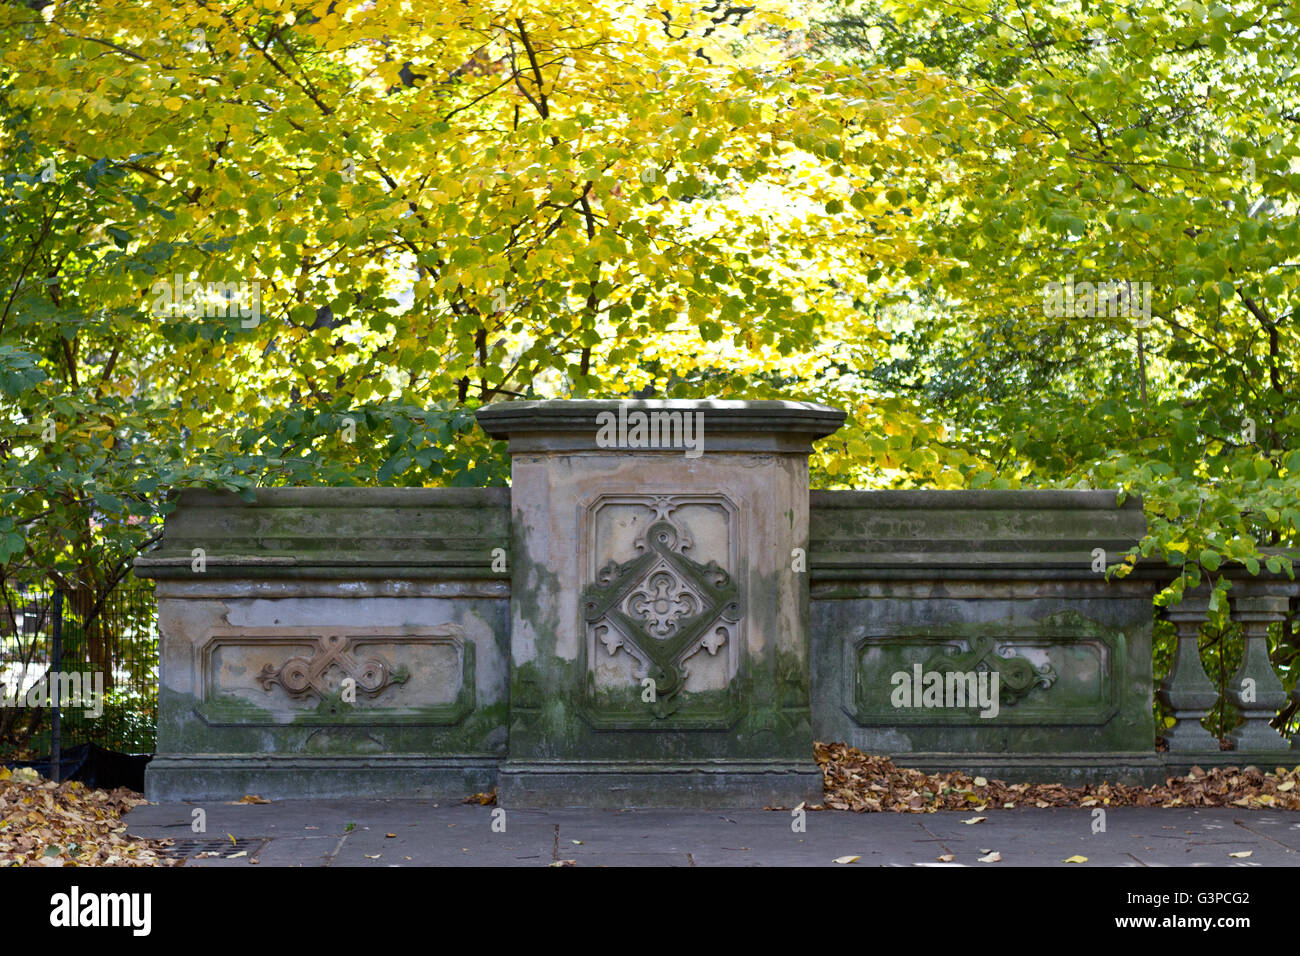 Architectural detail of a walking bridge with green patina surrounded by autumn foliage in Central Park - Stock Image